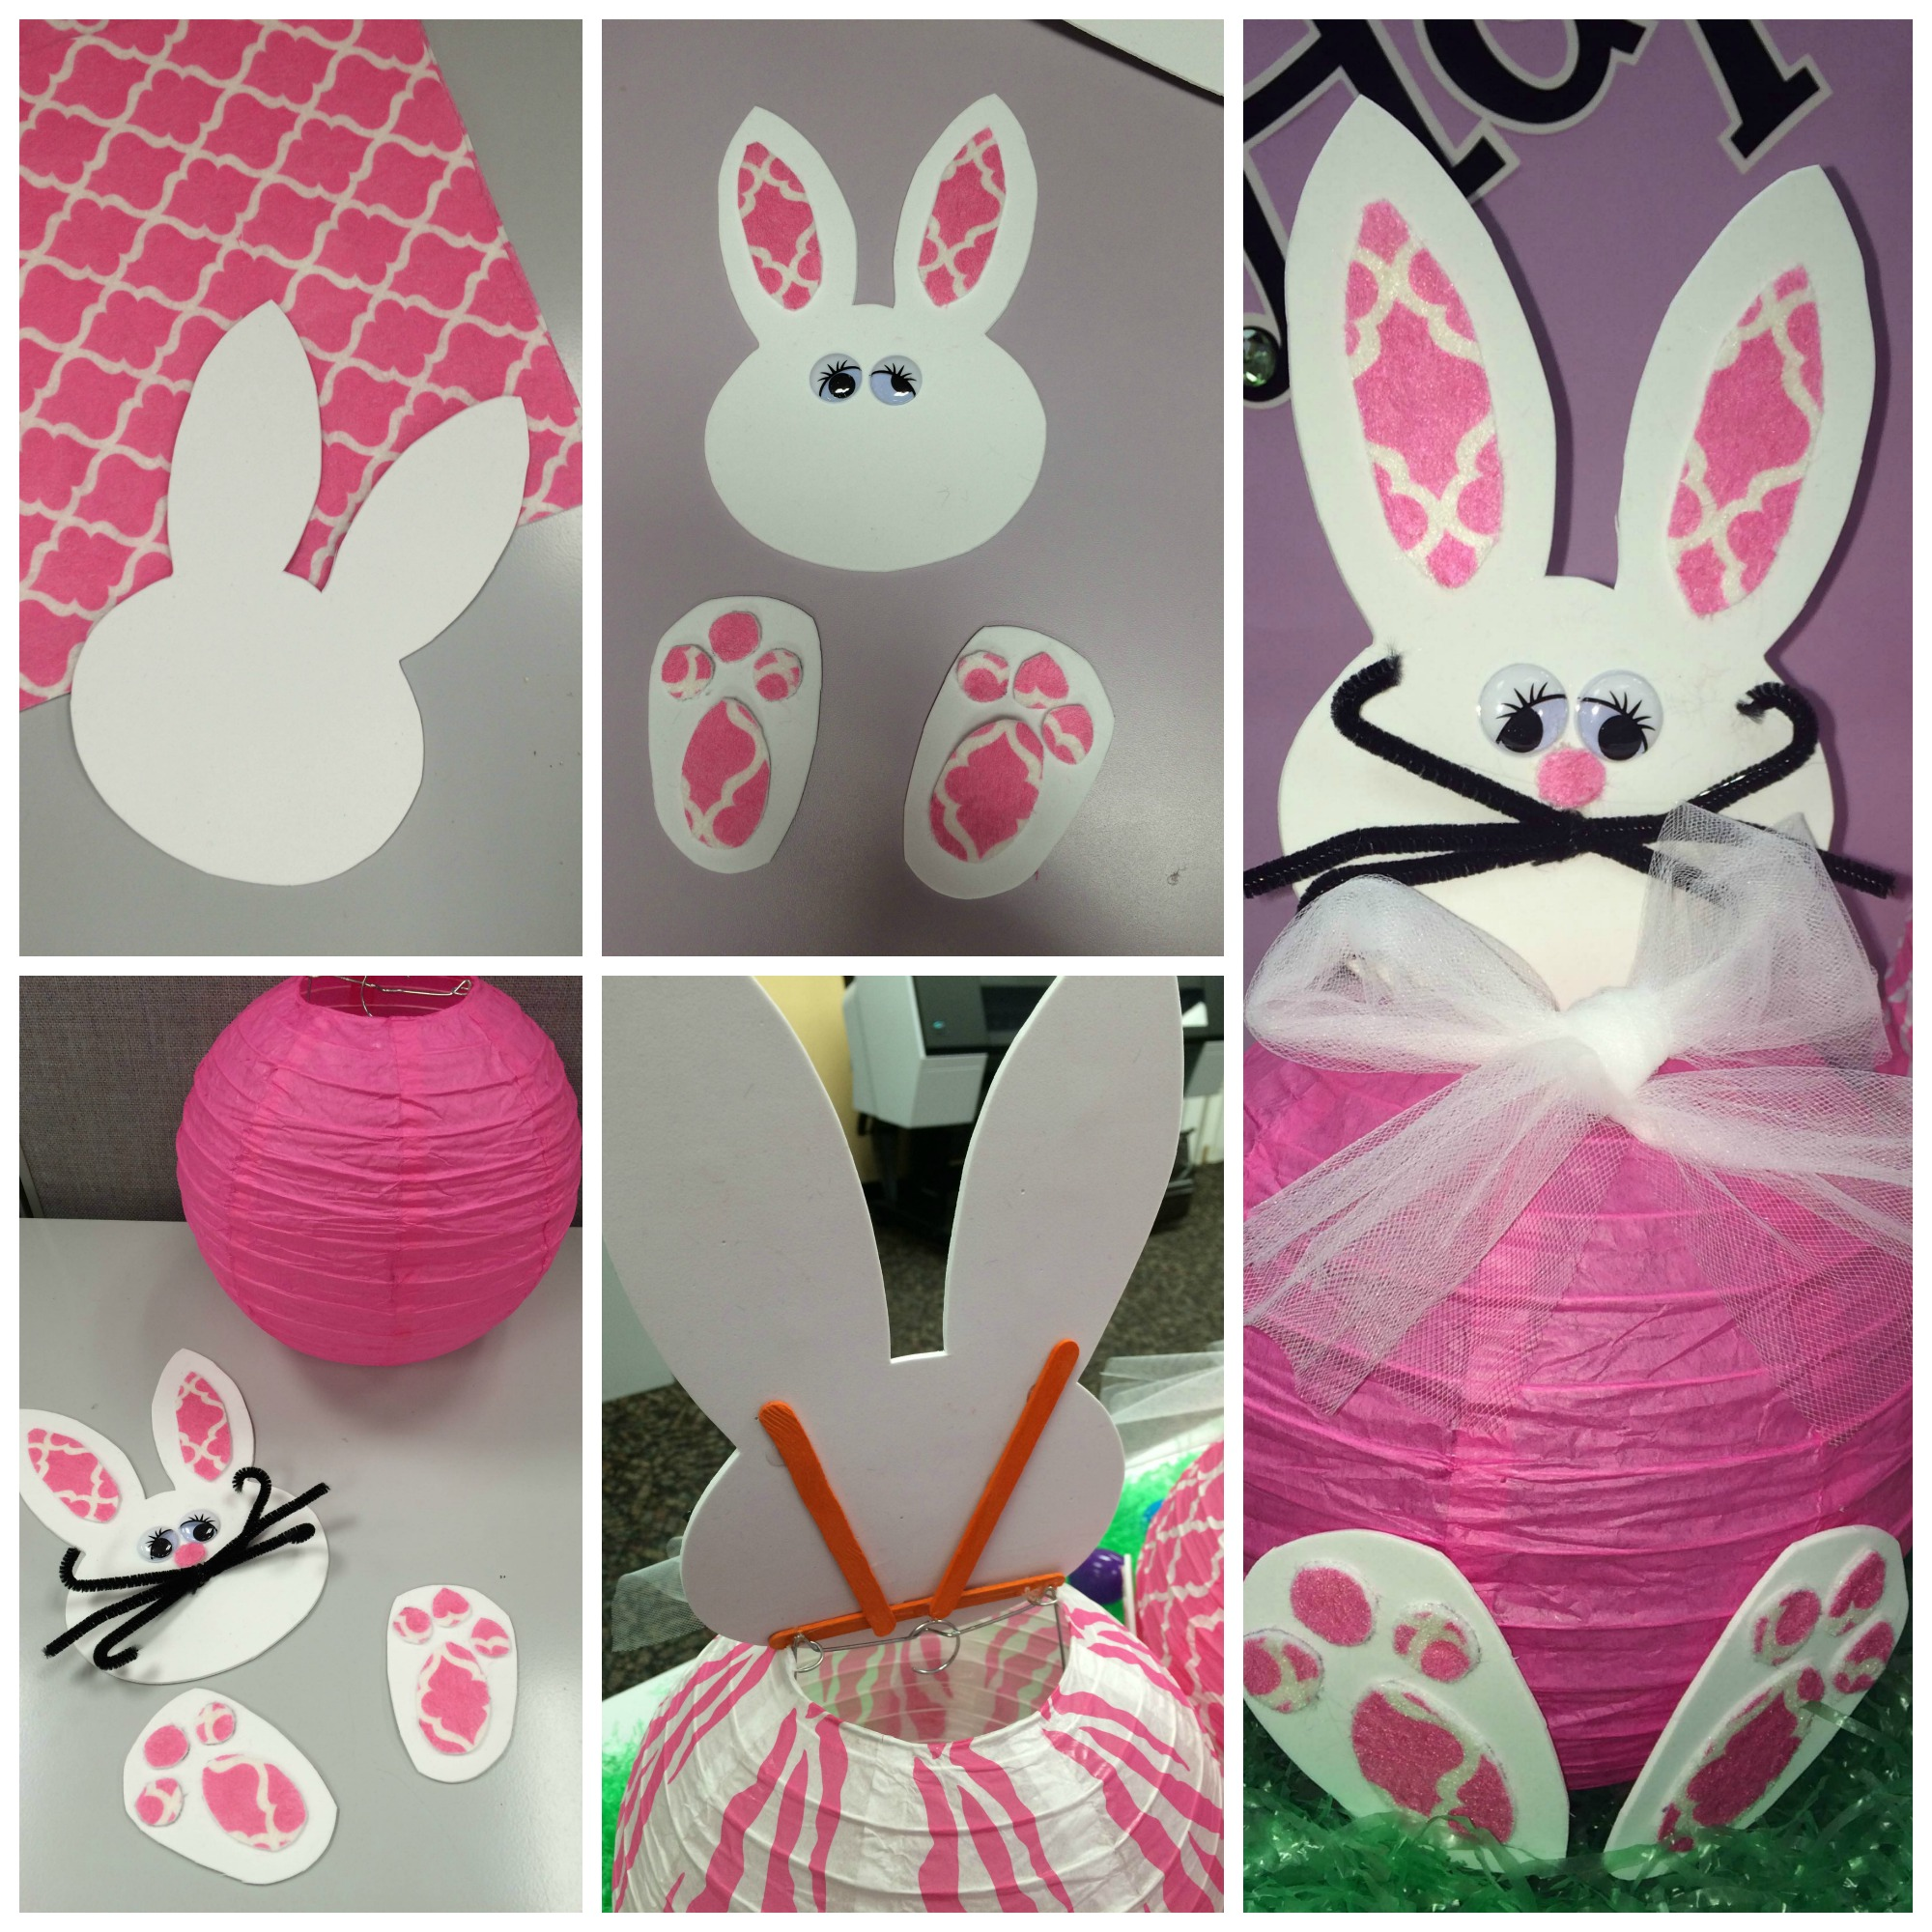 How To Make Paper Christmas Ceiling Decorations : Diy spring decorations paper bunny lantern